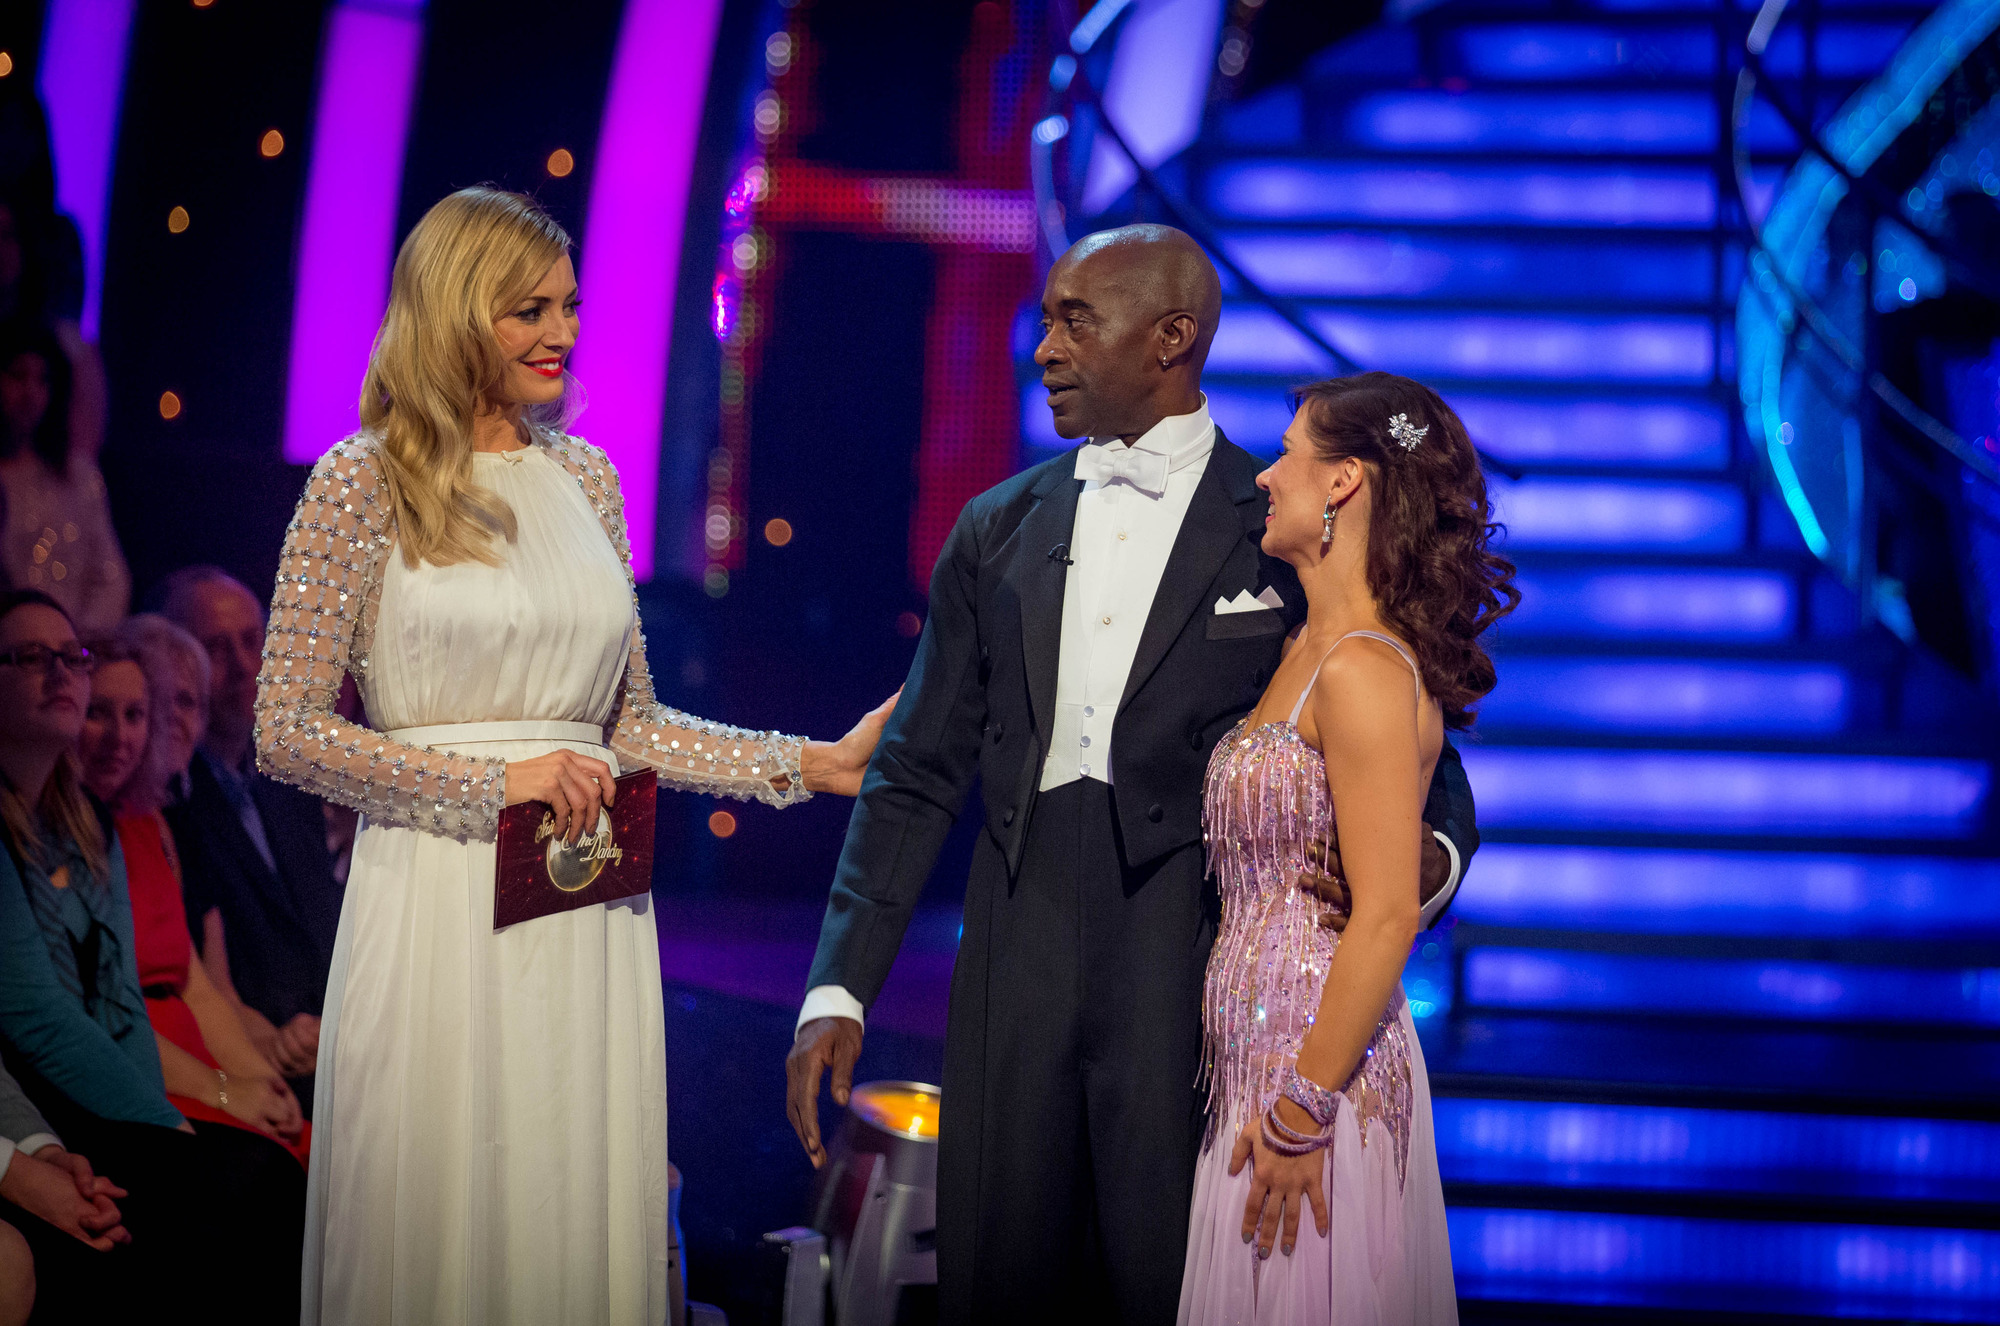 Patrick and Anya leave the competition Tess Daly, Patrick Robinson, Anya Garnis - (C) BBC - Photographer: Guy Levy